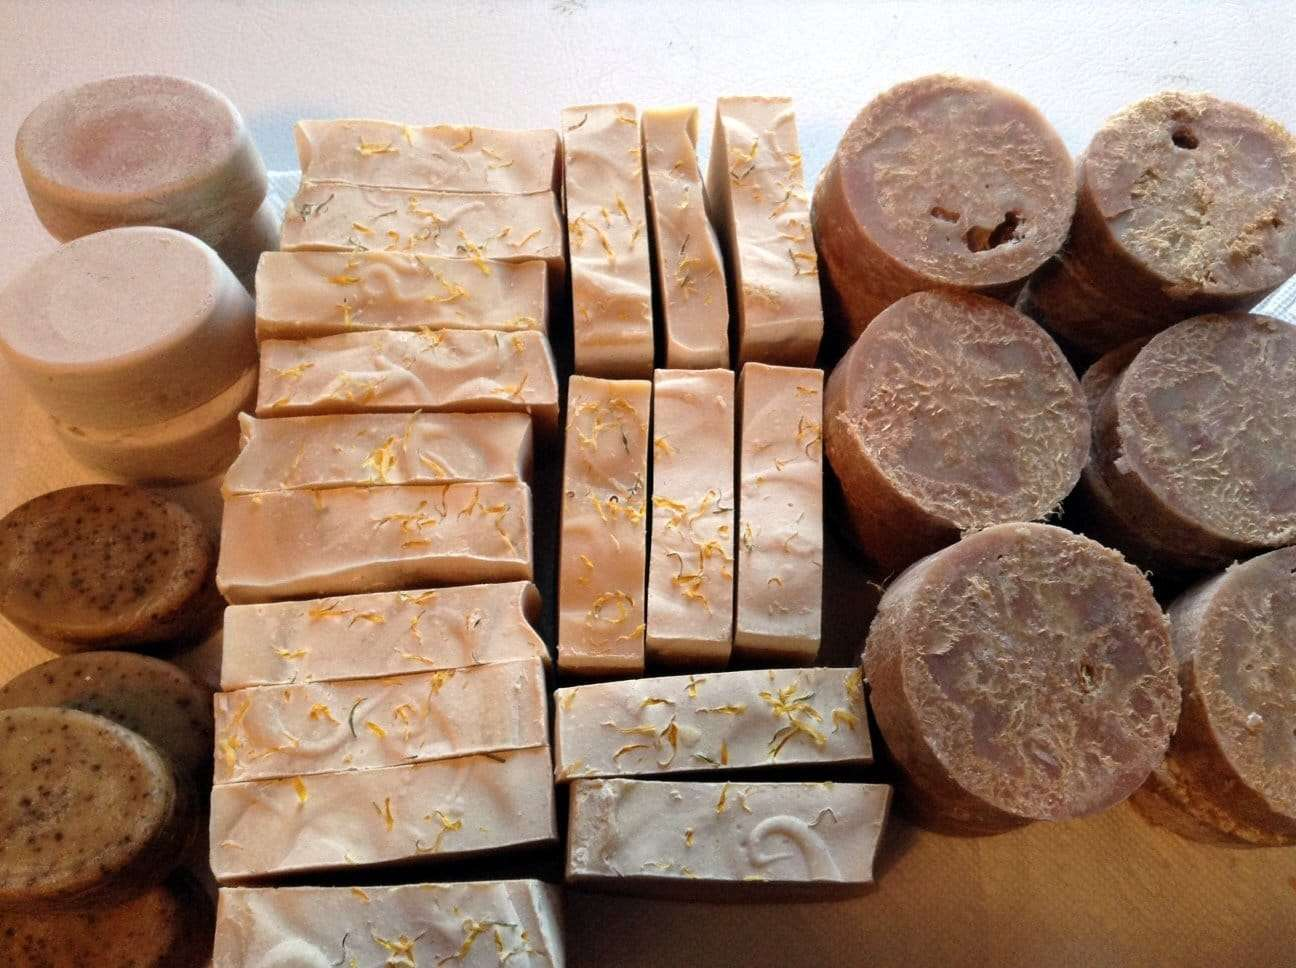 Blackberry Ridge Farm goat milk soaps - Wolcott, VT 05680